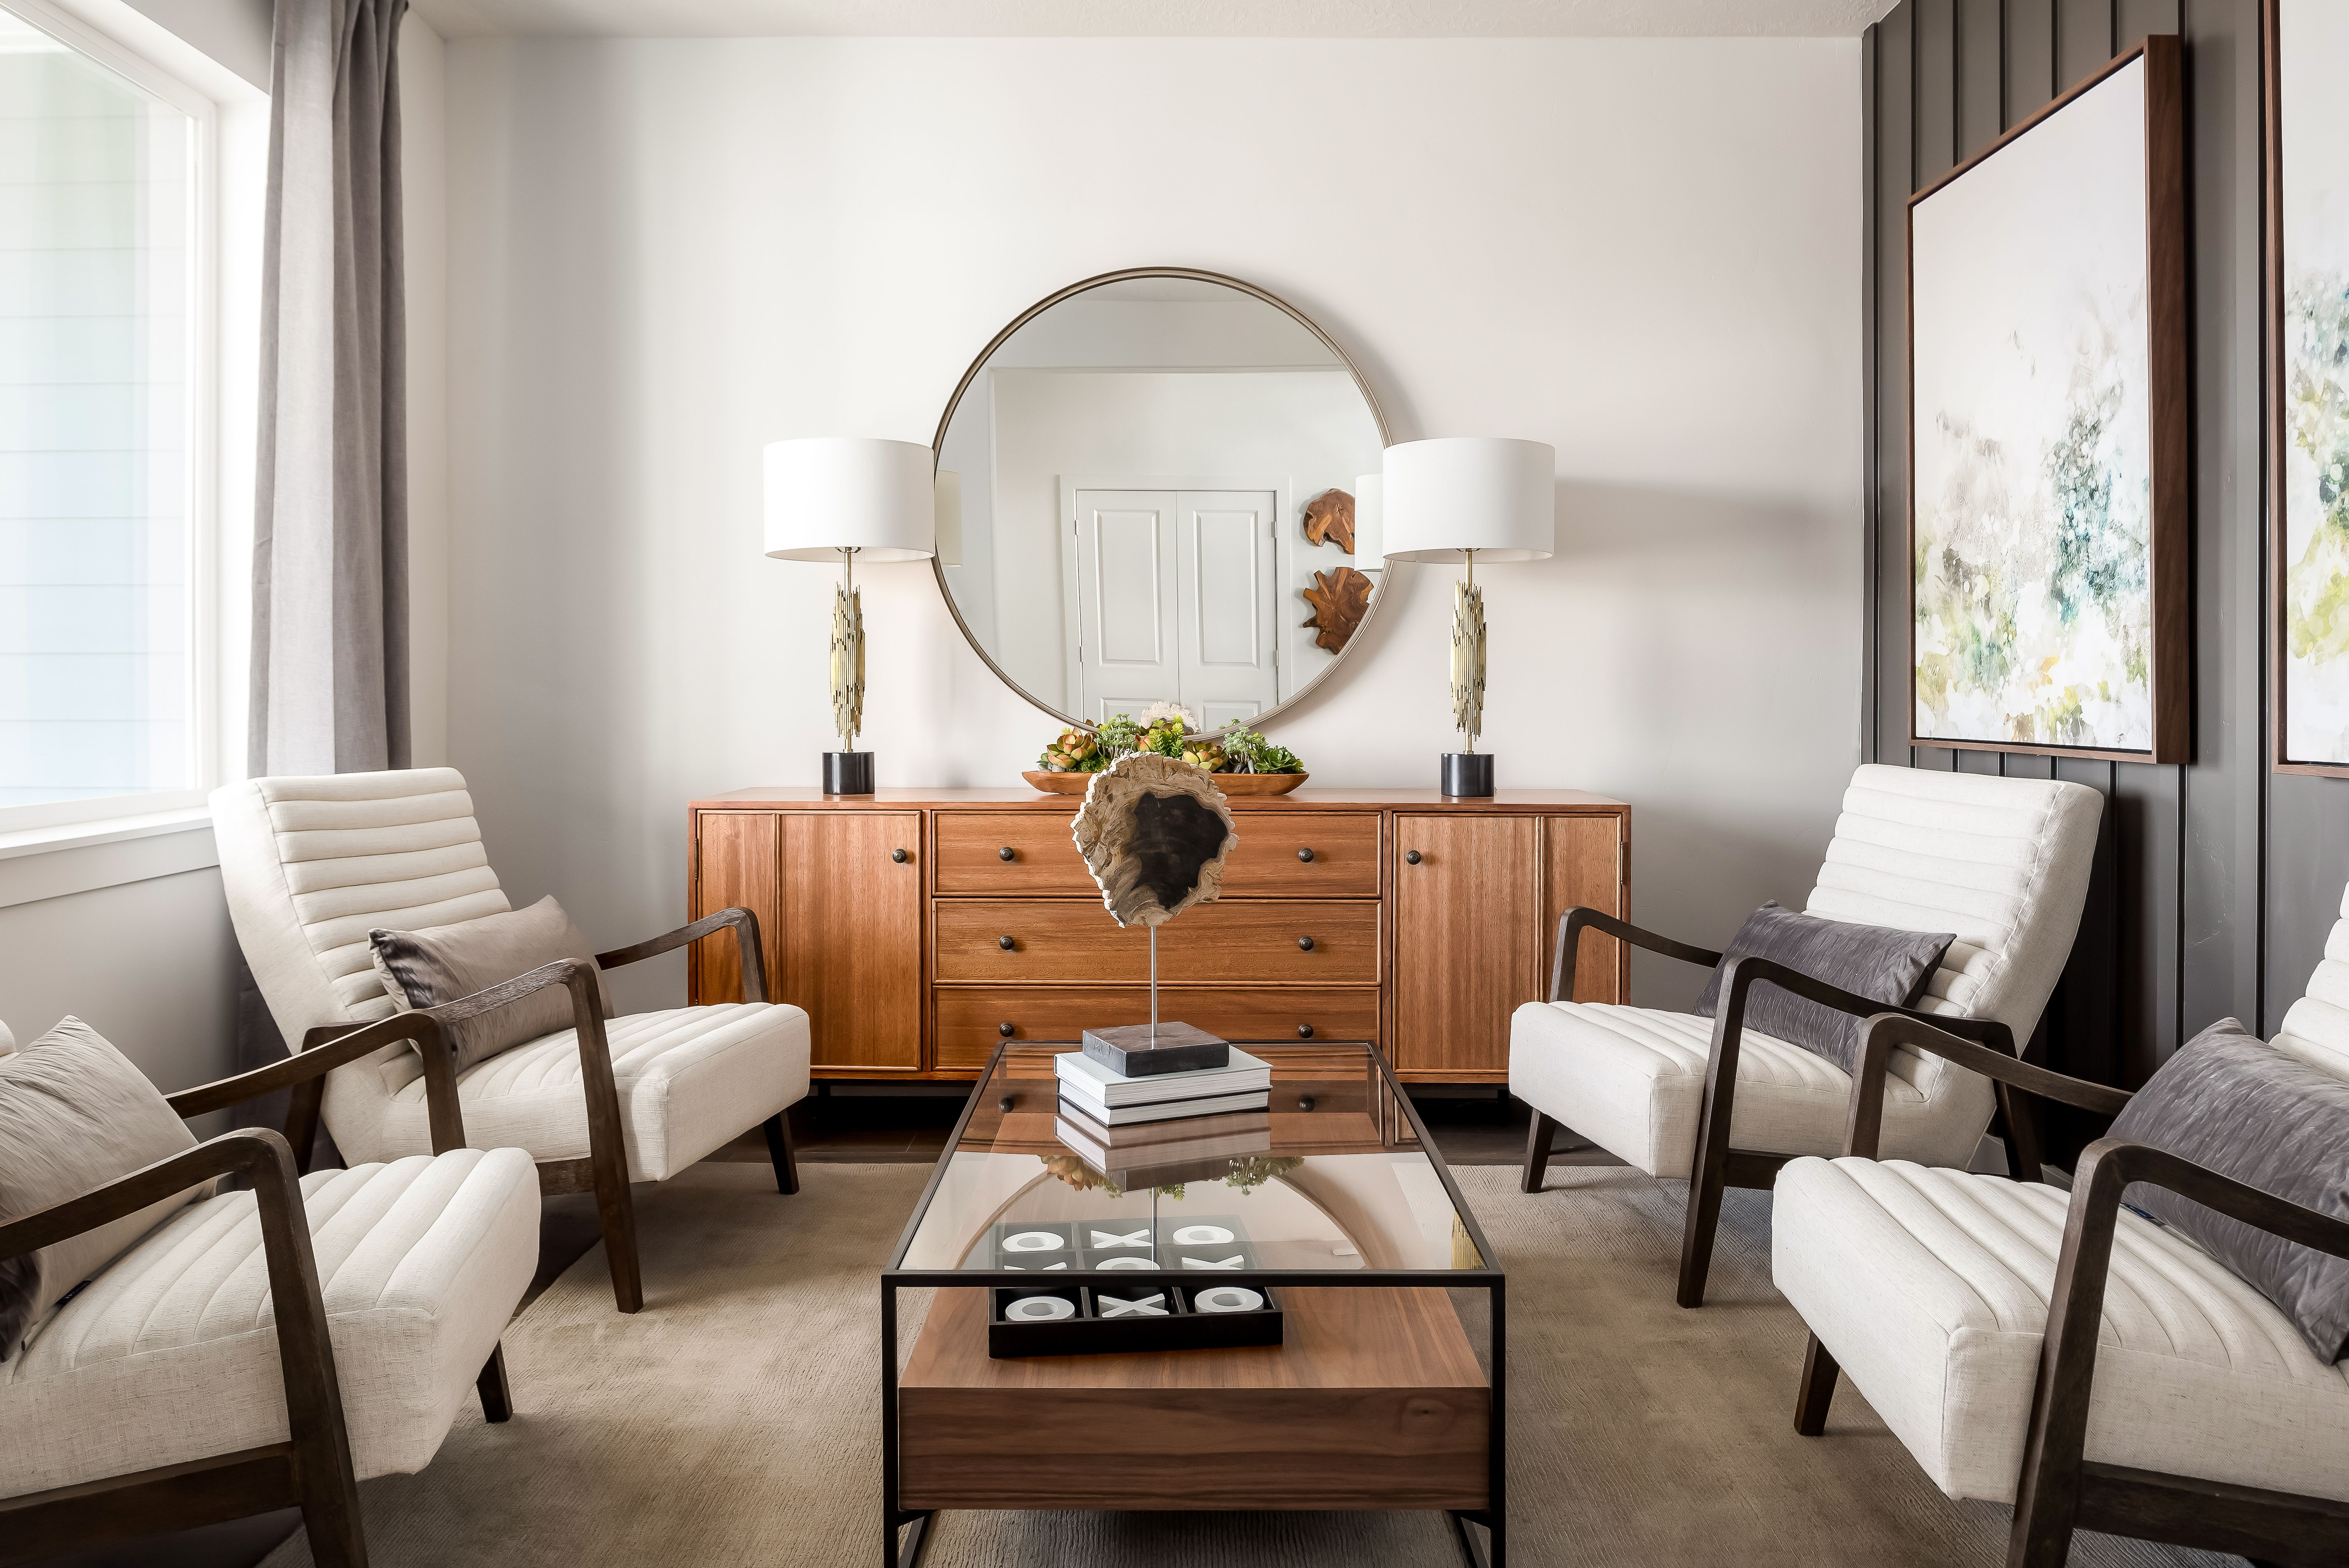 The Circular Mirror And Stunning Furniture Elevate The Look And